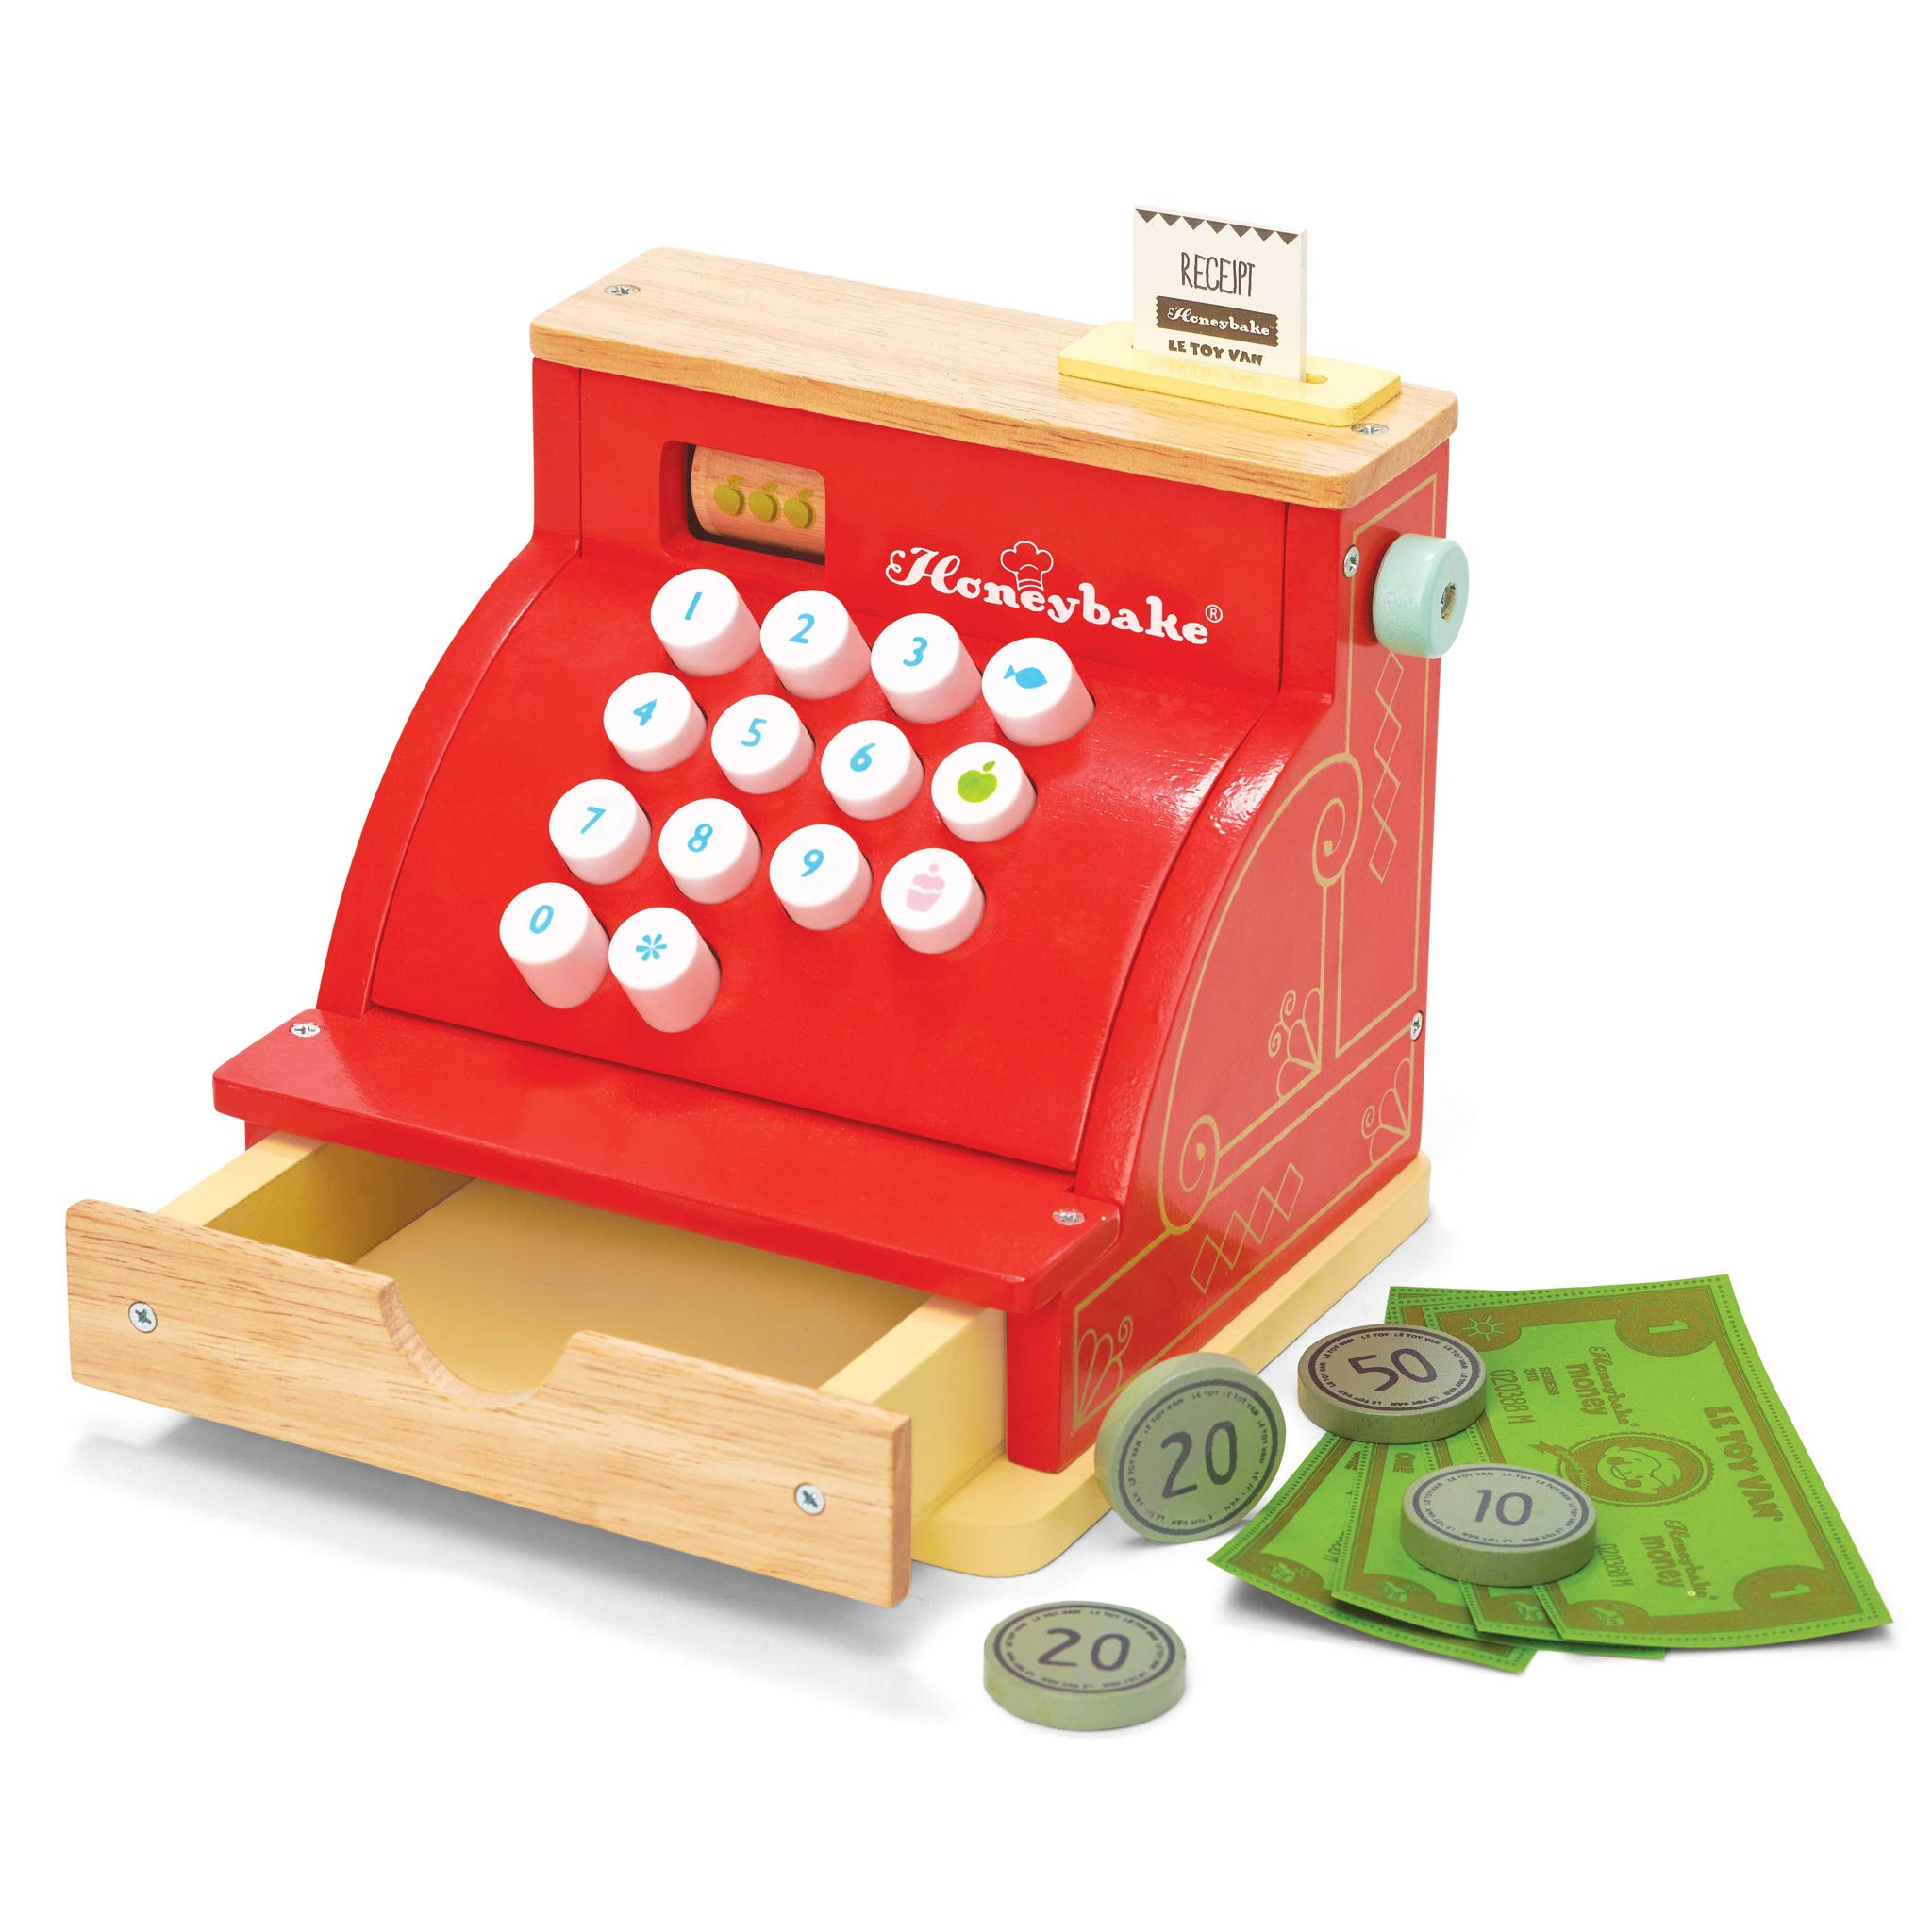 Letterland Le Toy Van Honeyback Collection Red Cash Register Premium Wooden Toys for Kids Ages 3 Years & Up by Letterland (Image #1)